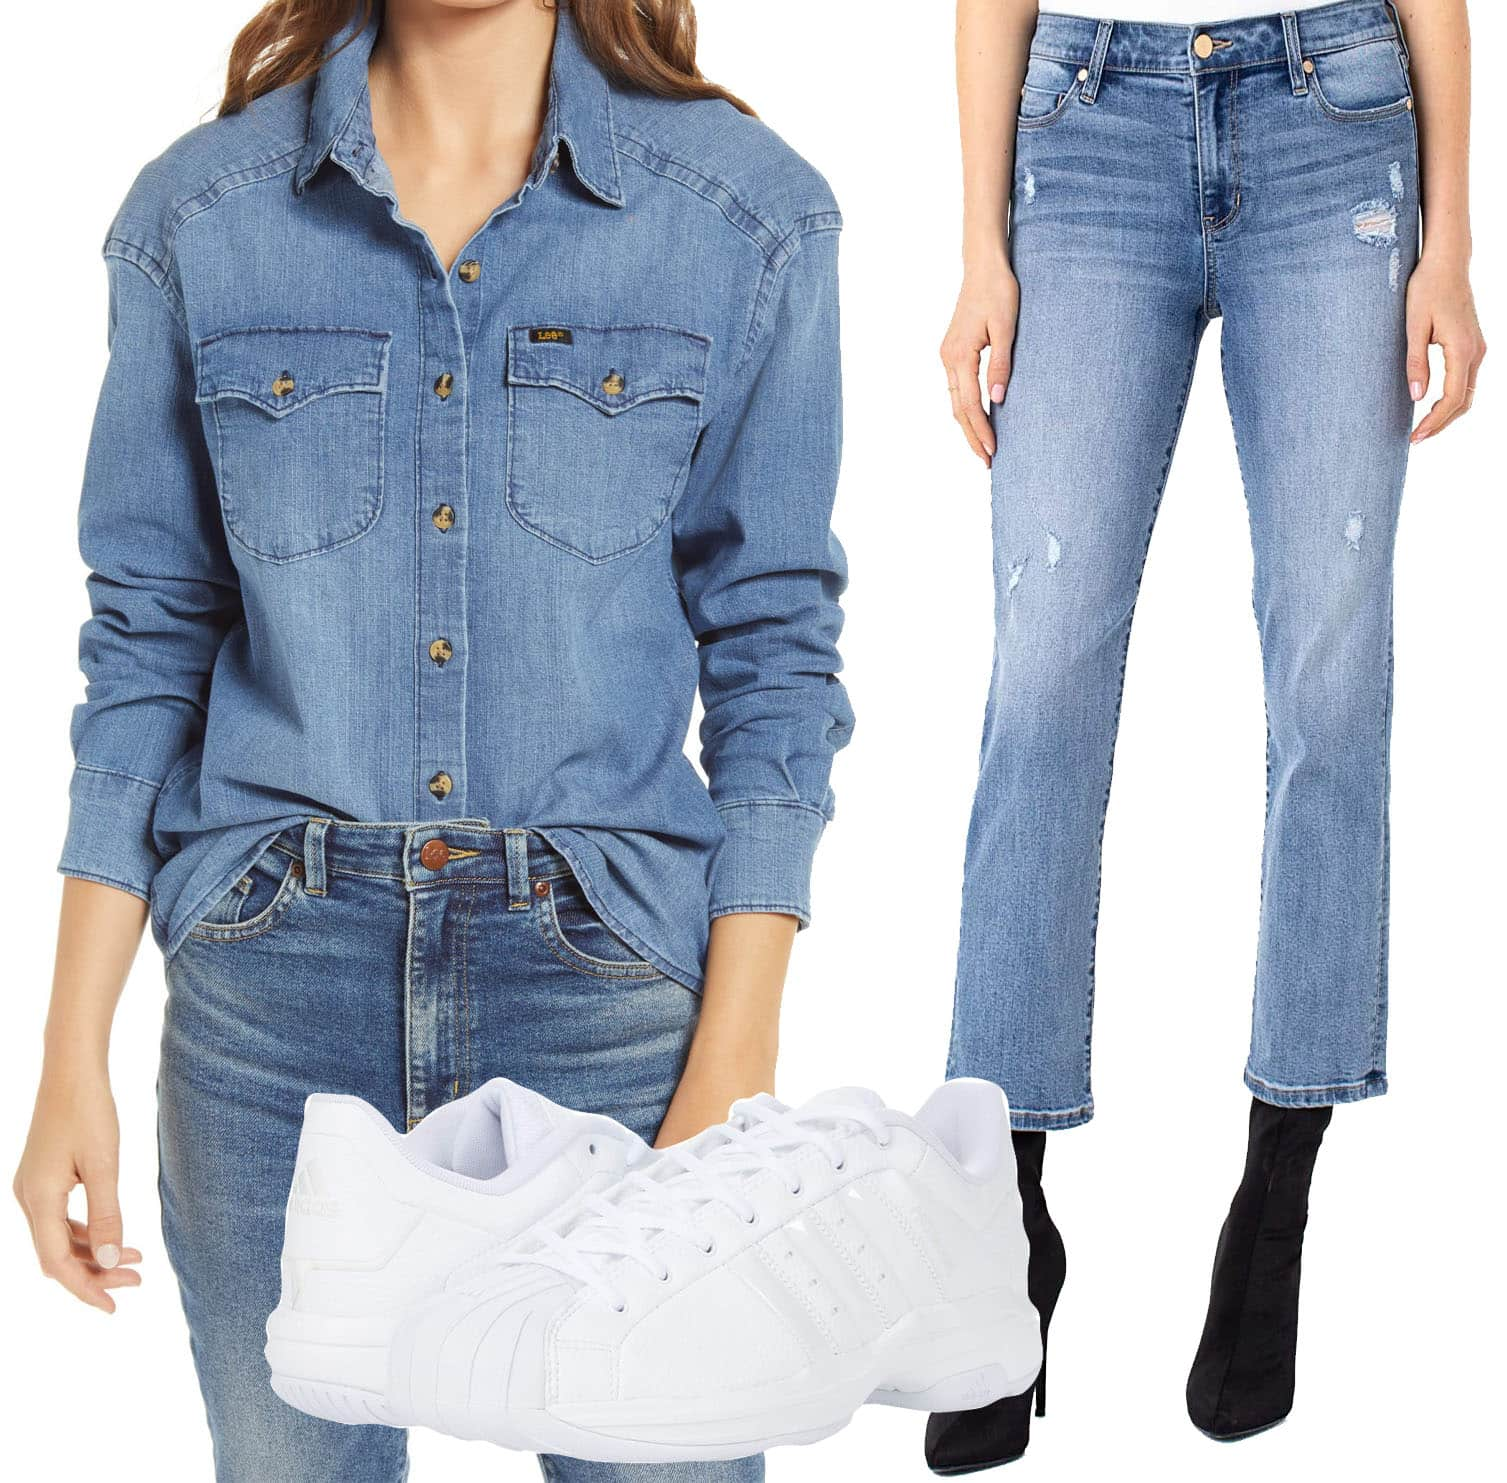 Lee Frontier Western Button Front Denim Shirt, Liverpool Crop Straight Jeans with Destruct in Gordon, Adidas sneakers